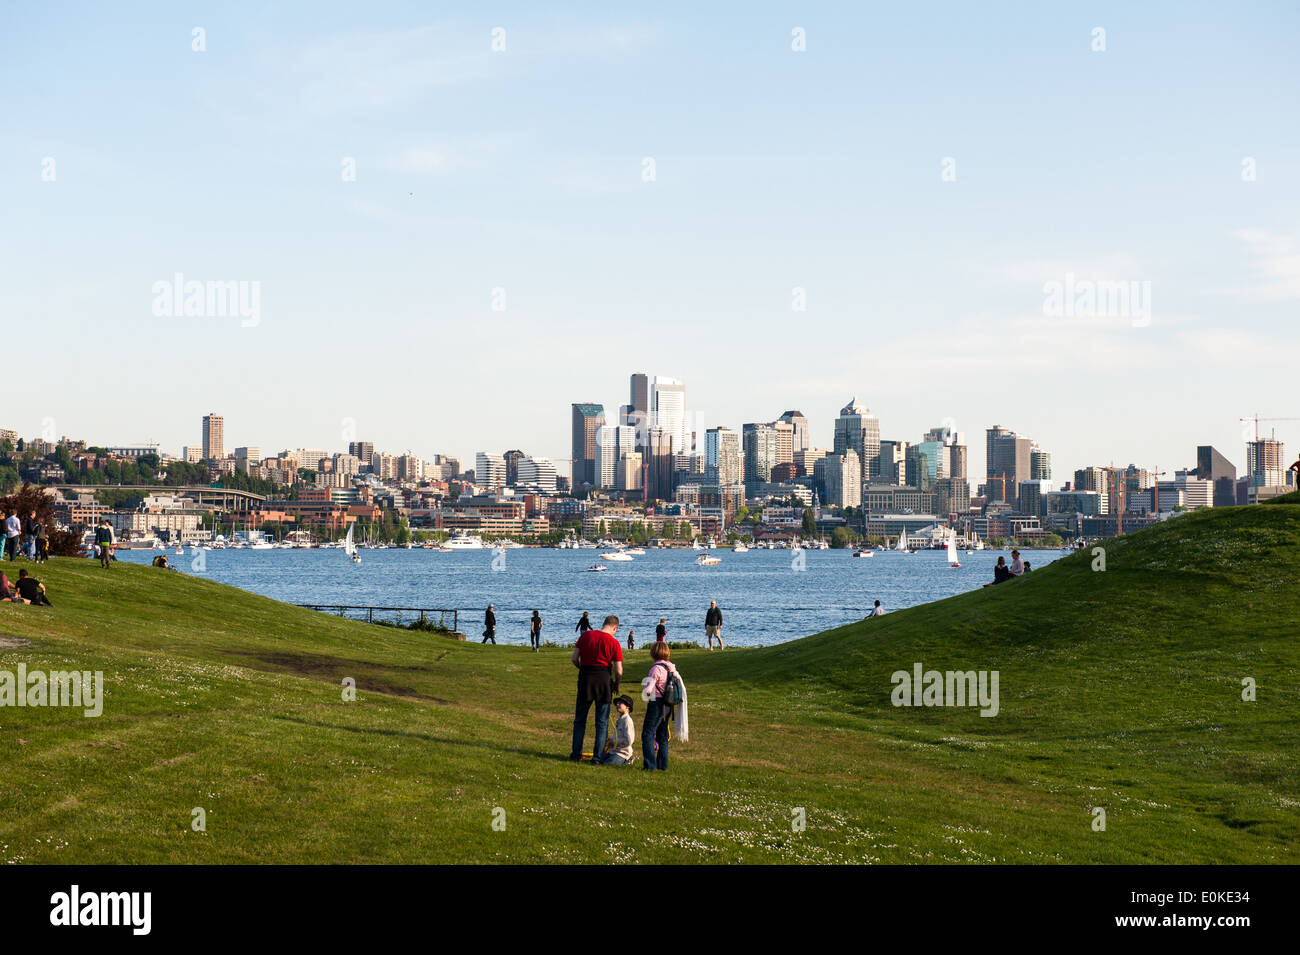 Families and friends gather at Gas Works Park which overlooks Lake Union and the Seattle Skyline. - Stock Image